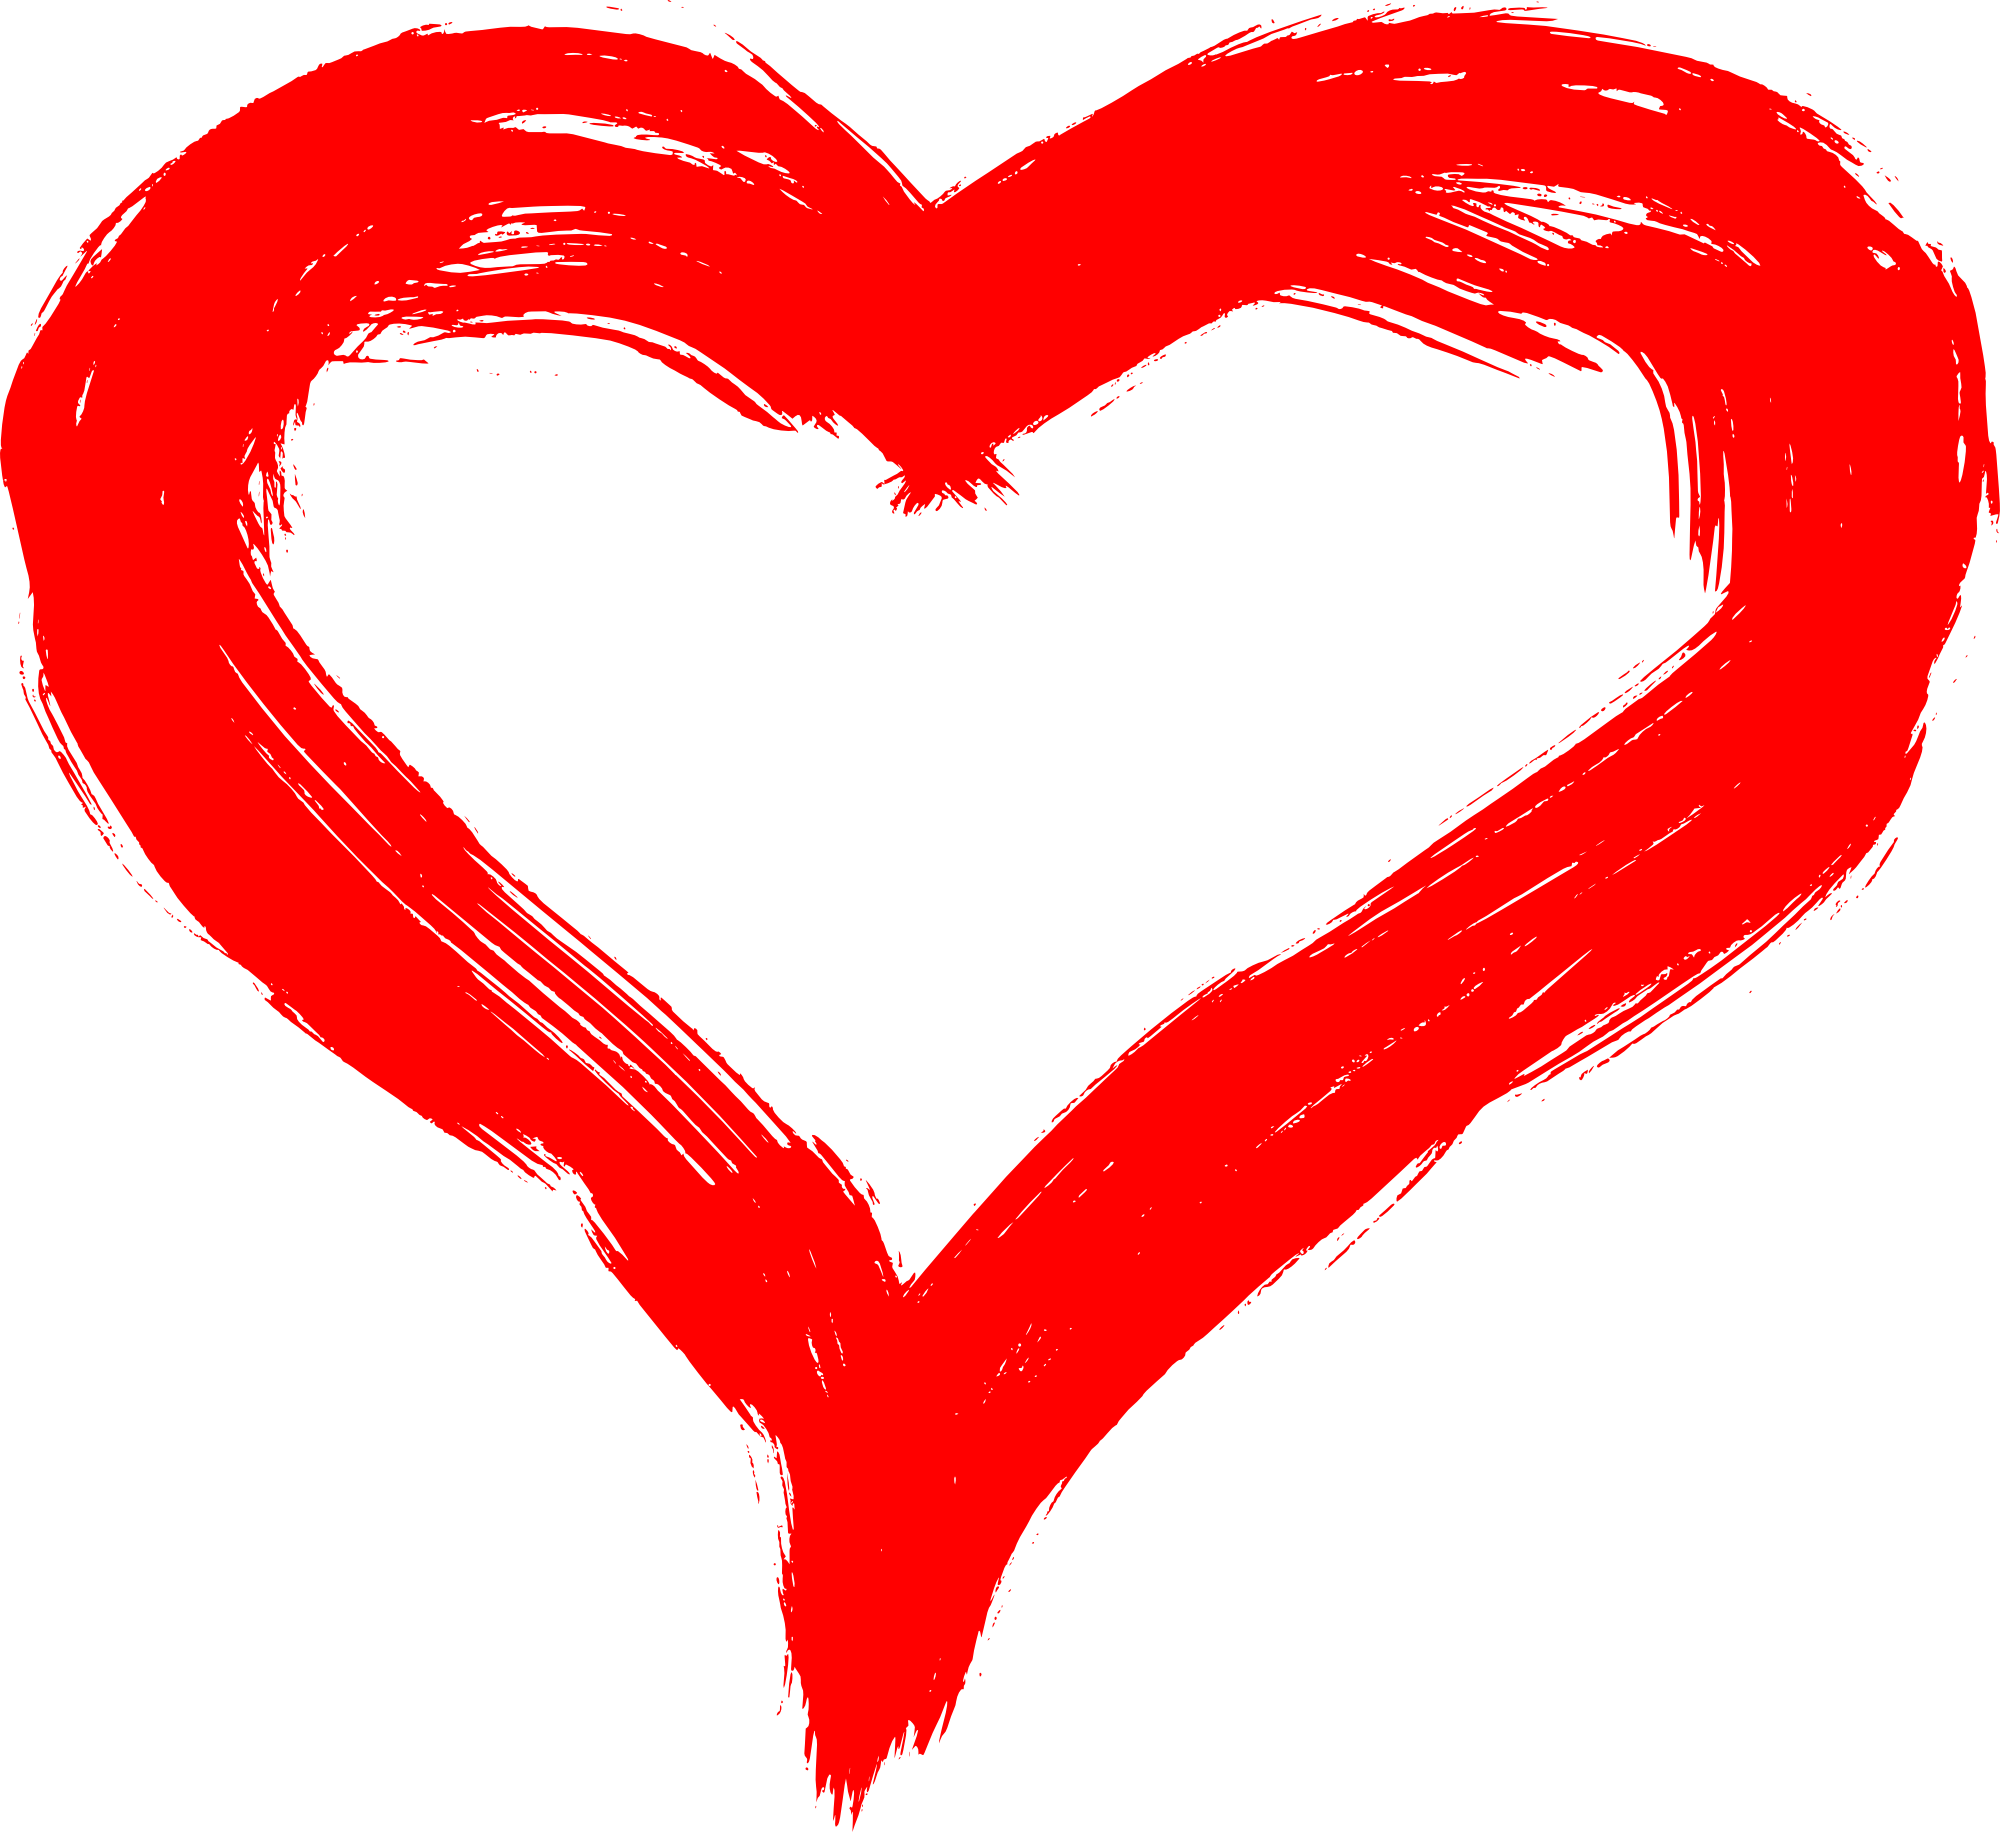 heart-png-19.png